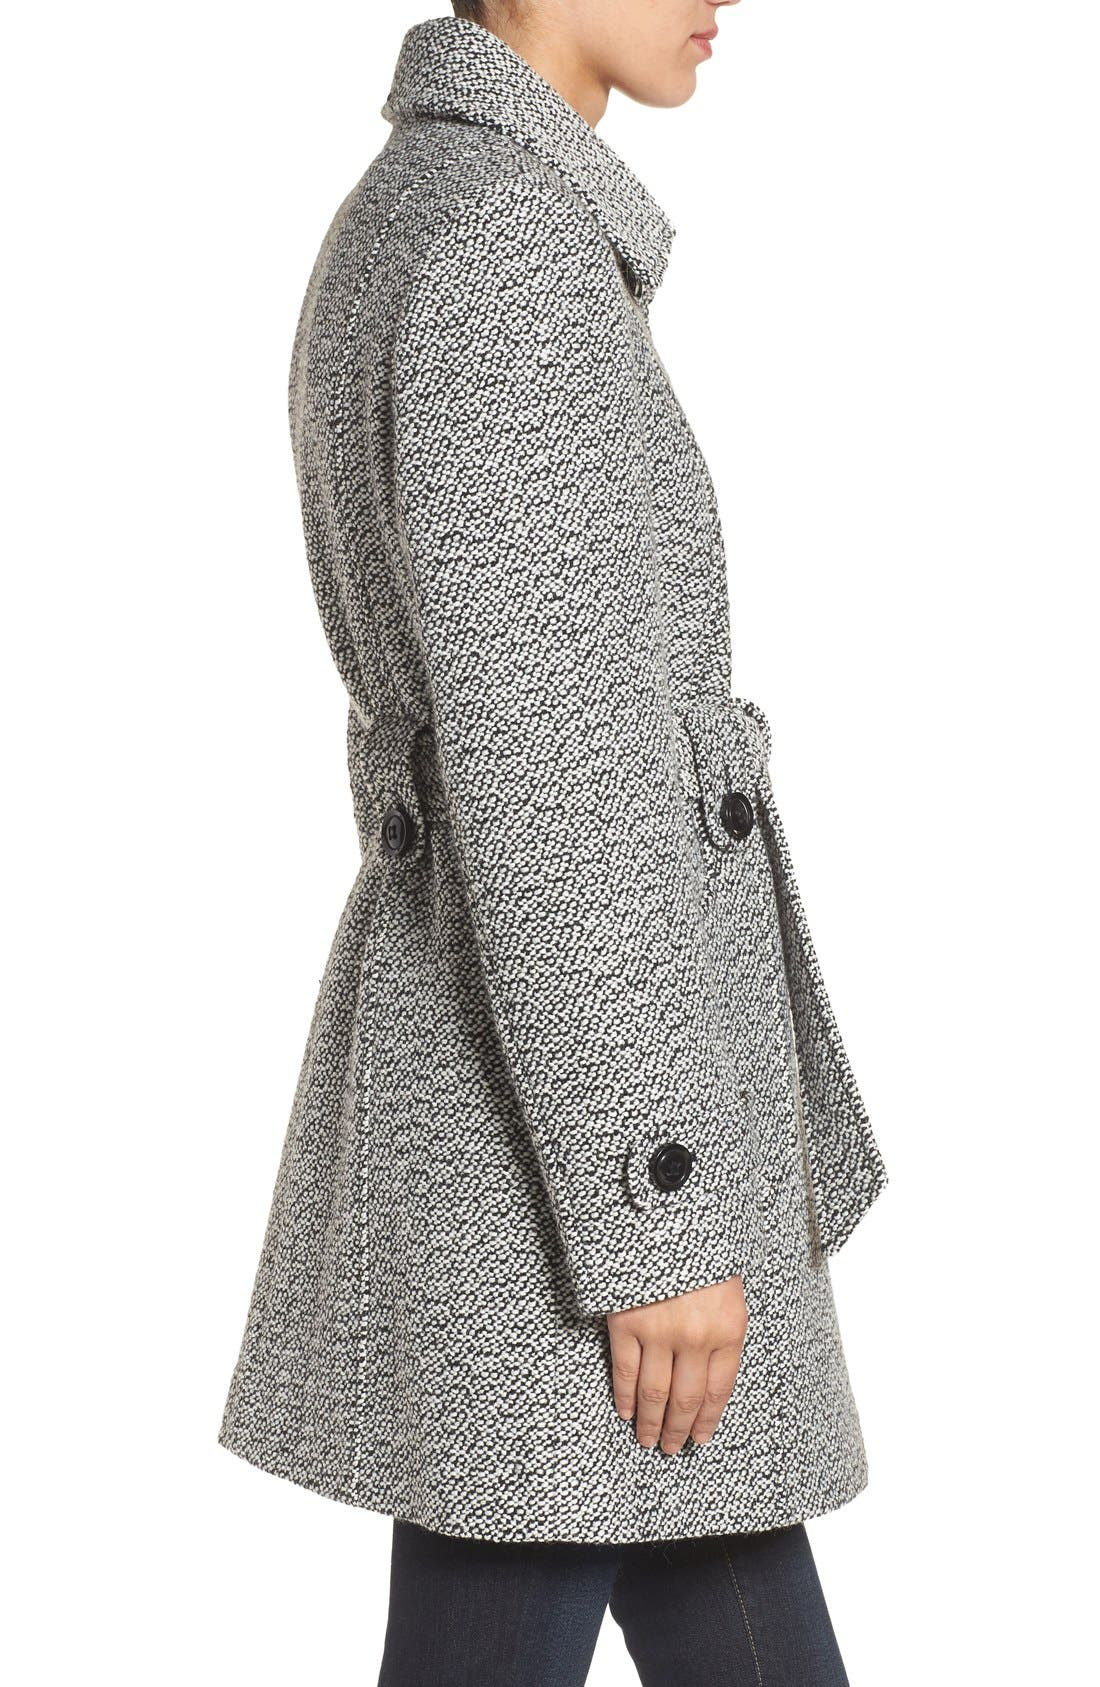 Belted Tweed Coat,                             Alternate thumbnail 3, color,                             Black/ White